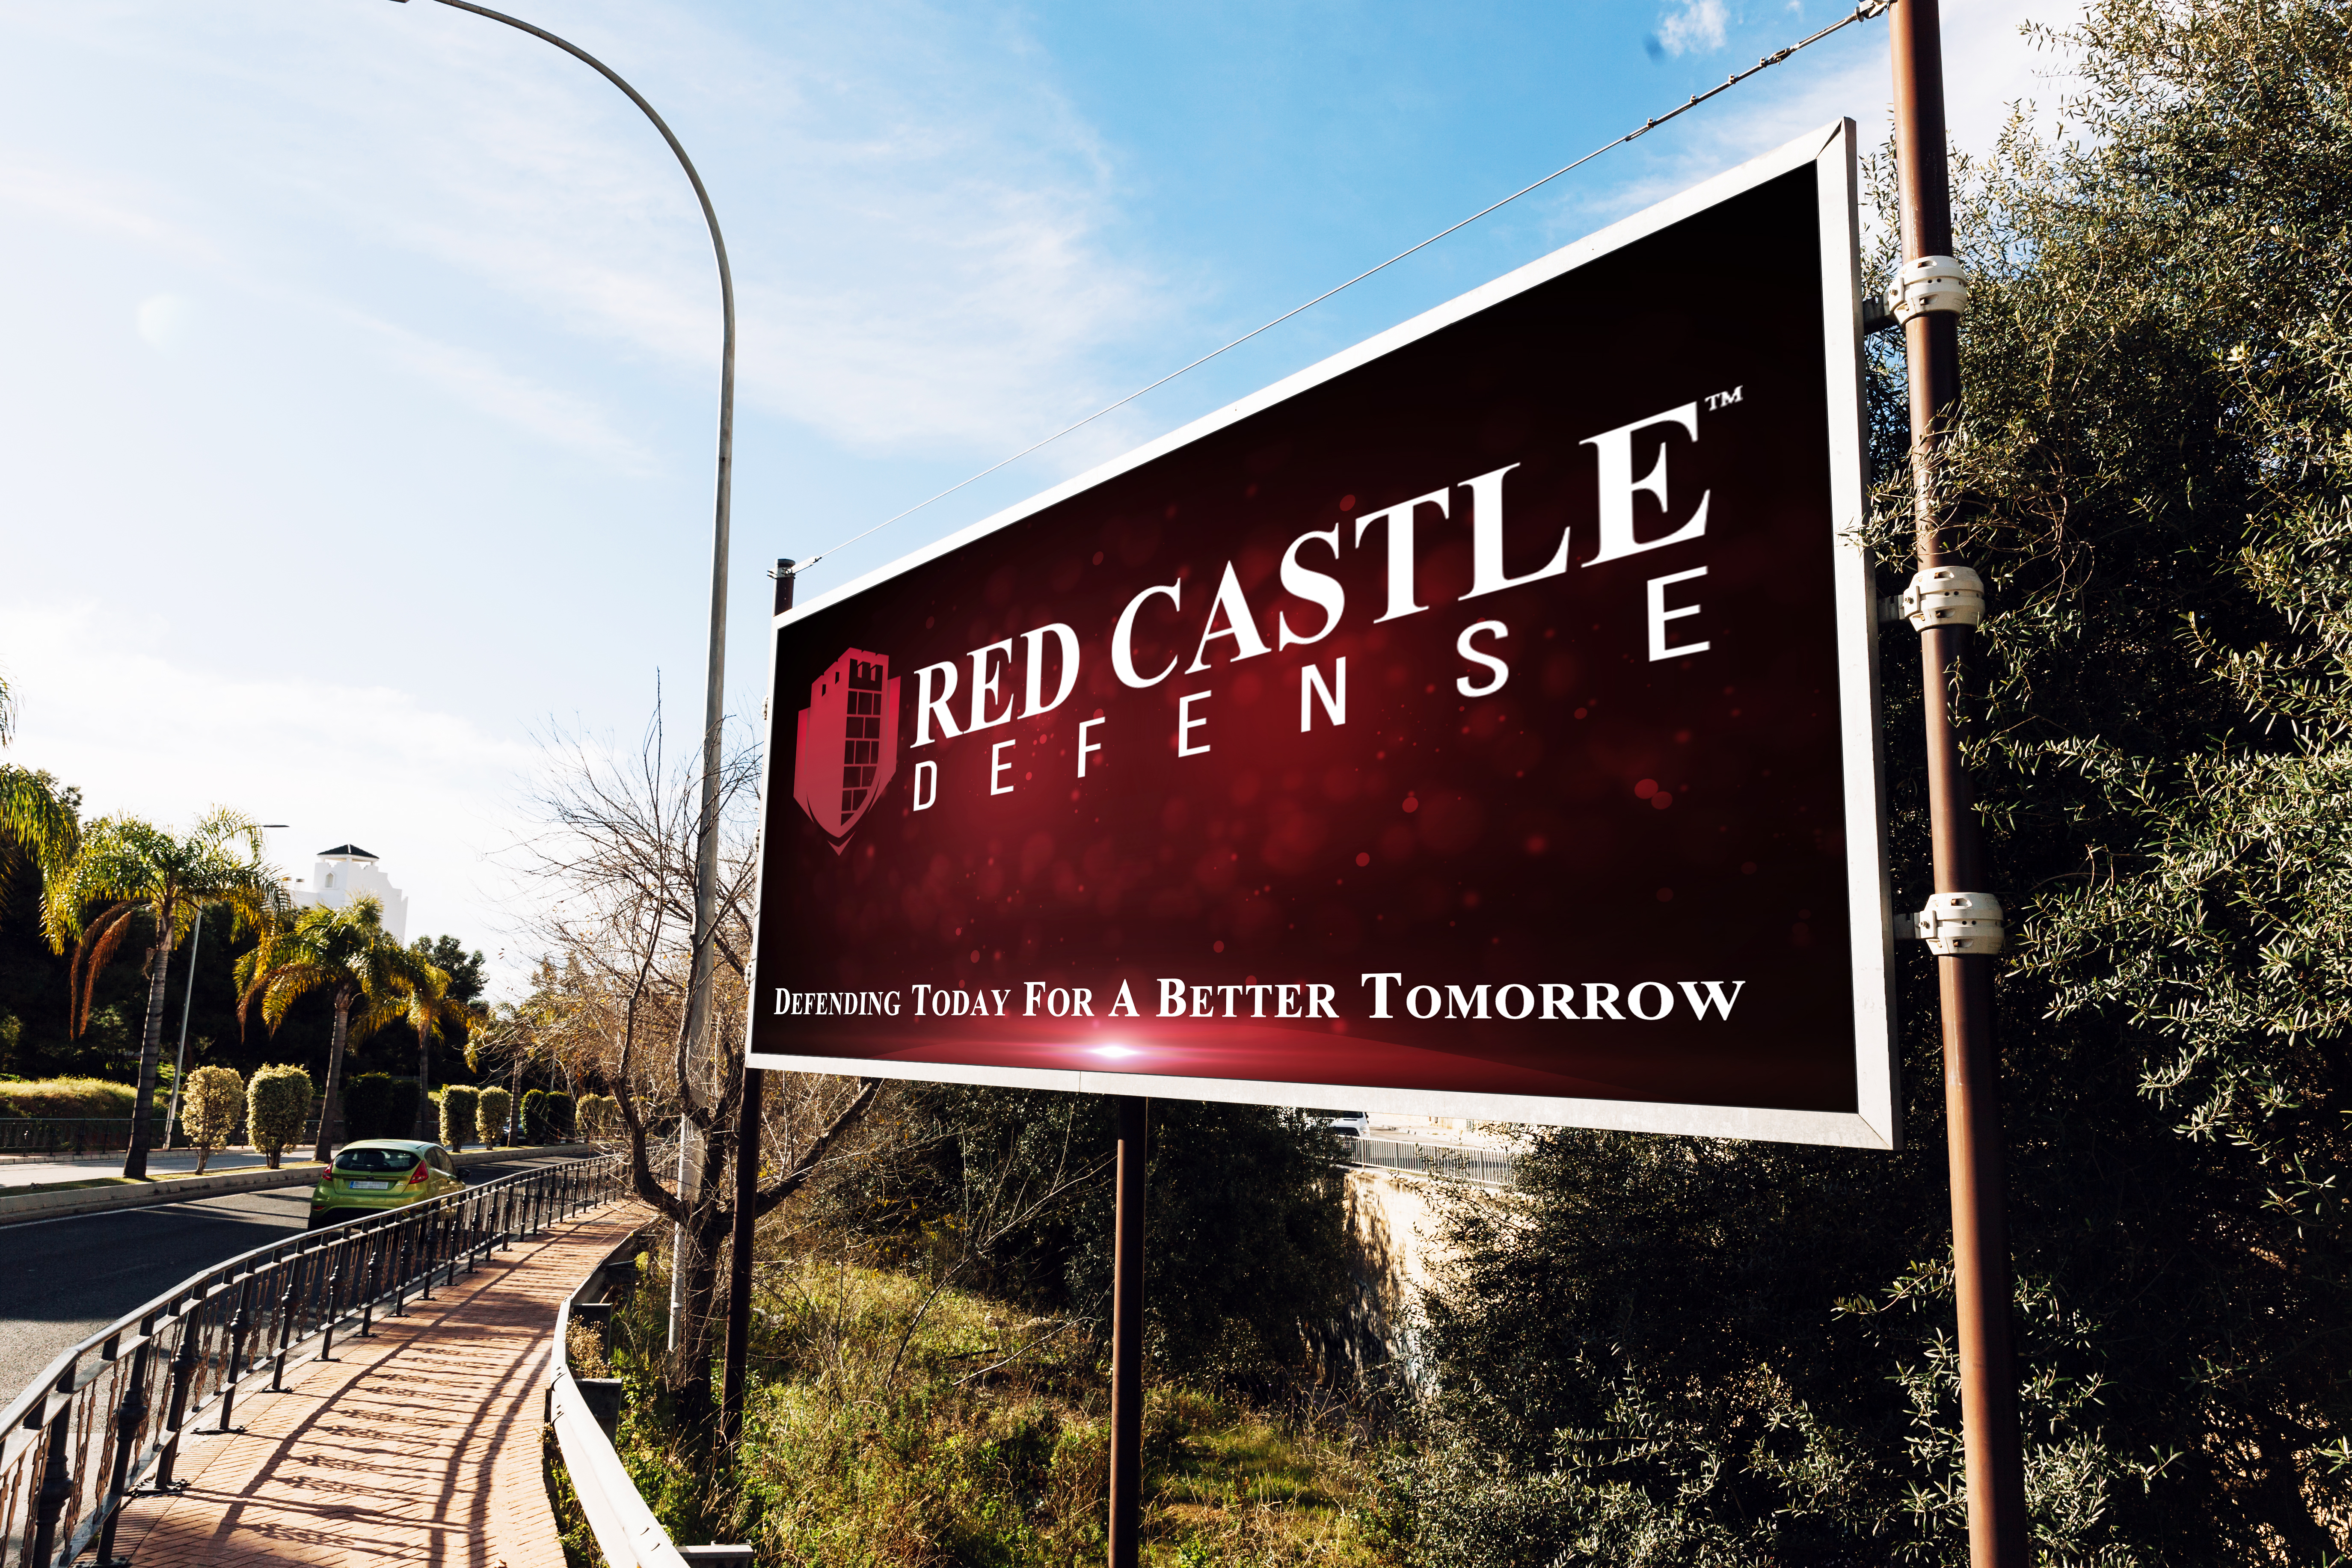 Bill Board display of the Red Castle Defense logo located in Texas